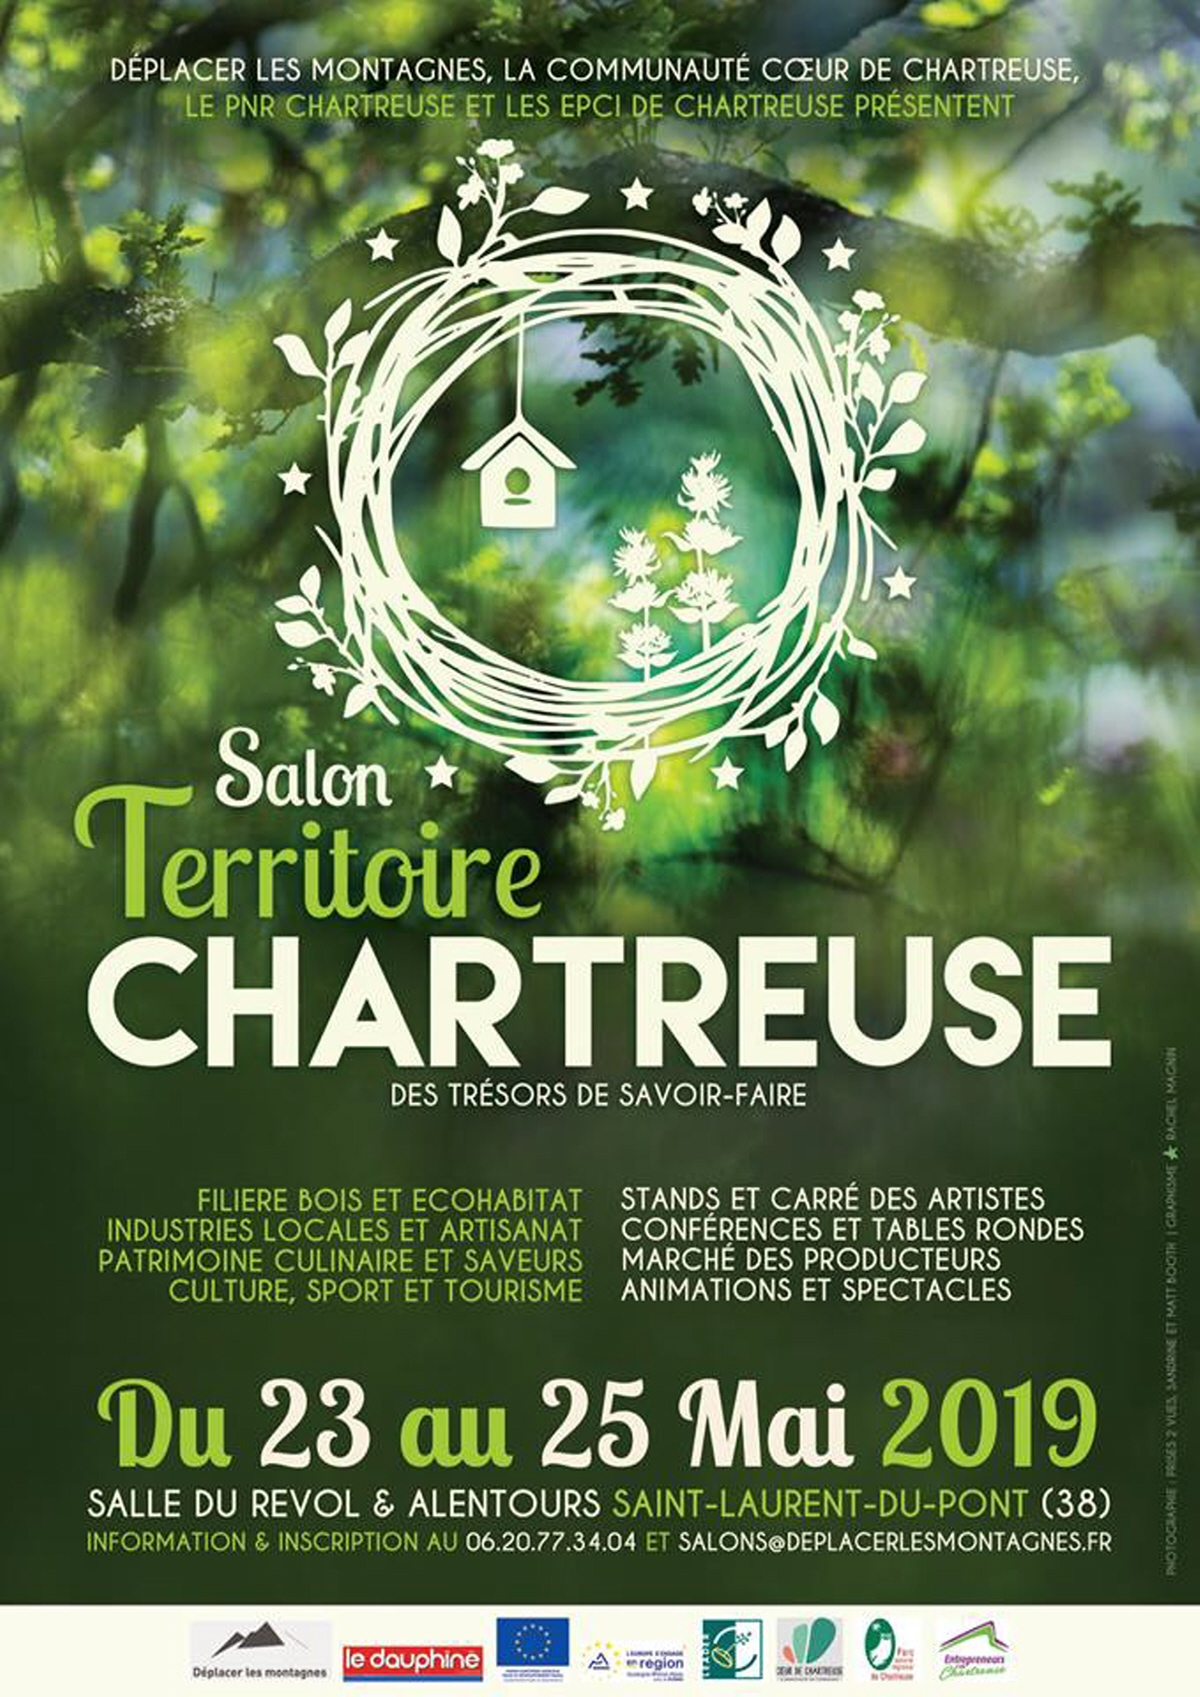 http://www.radio-couleur-chartreuse.org/wp-content/uploads/2019/05/illustration-salon-territoire-chartreuse_1-1553072514.jpg